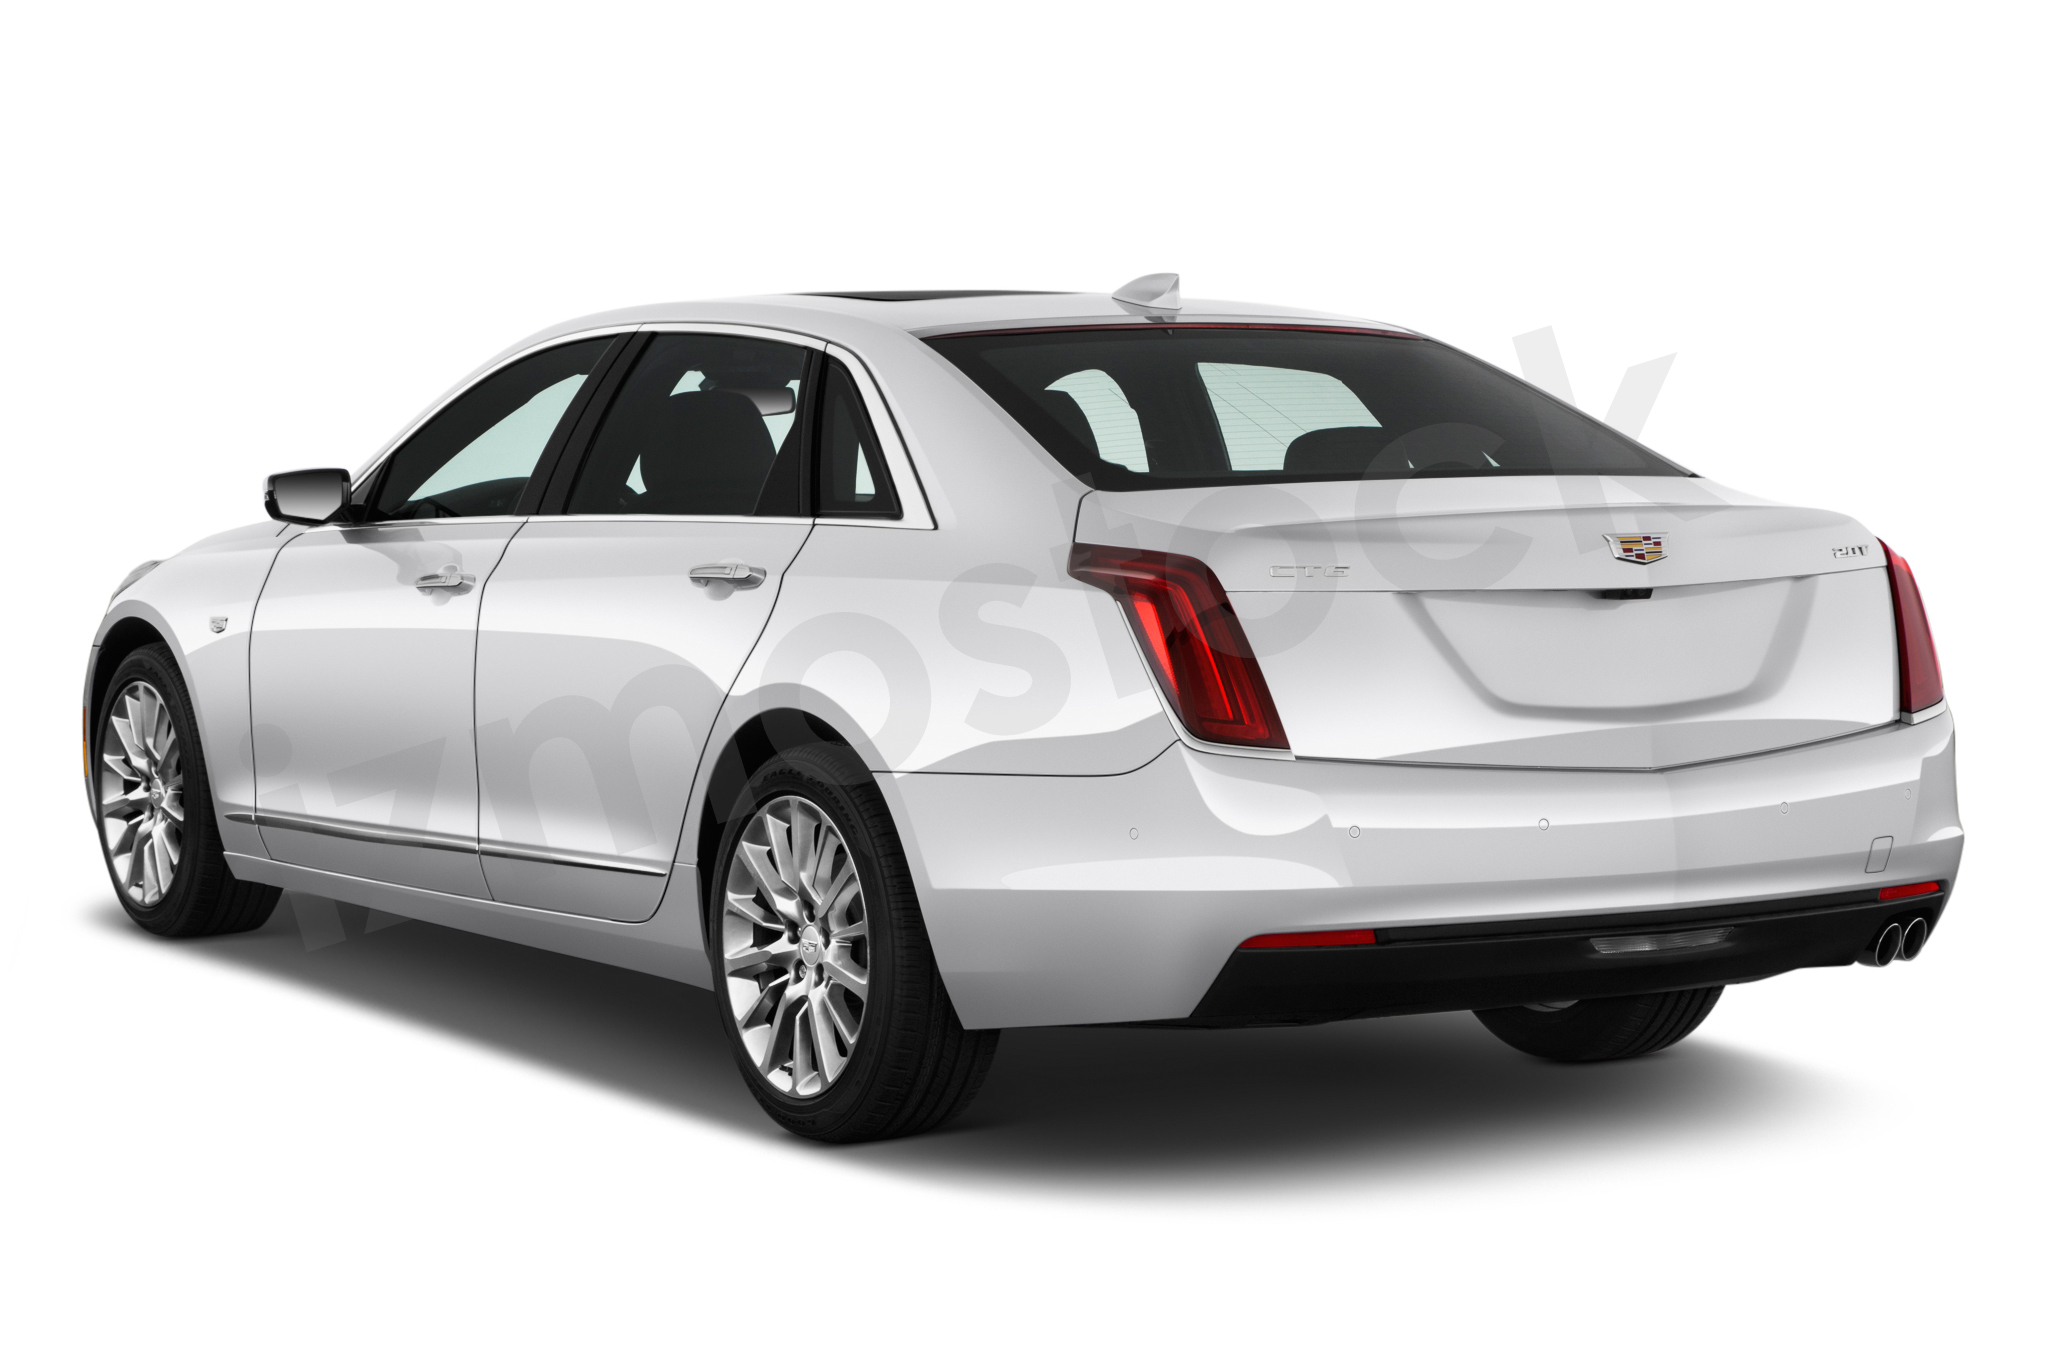 cadillac_17ct6sa1a_angularrear